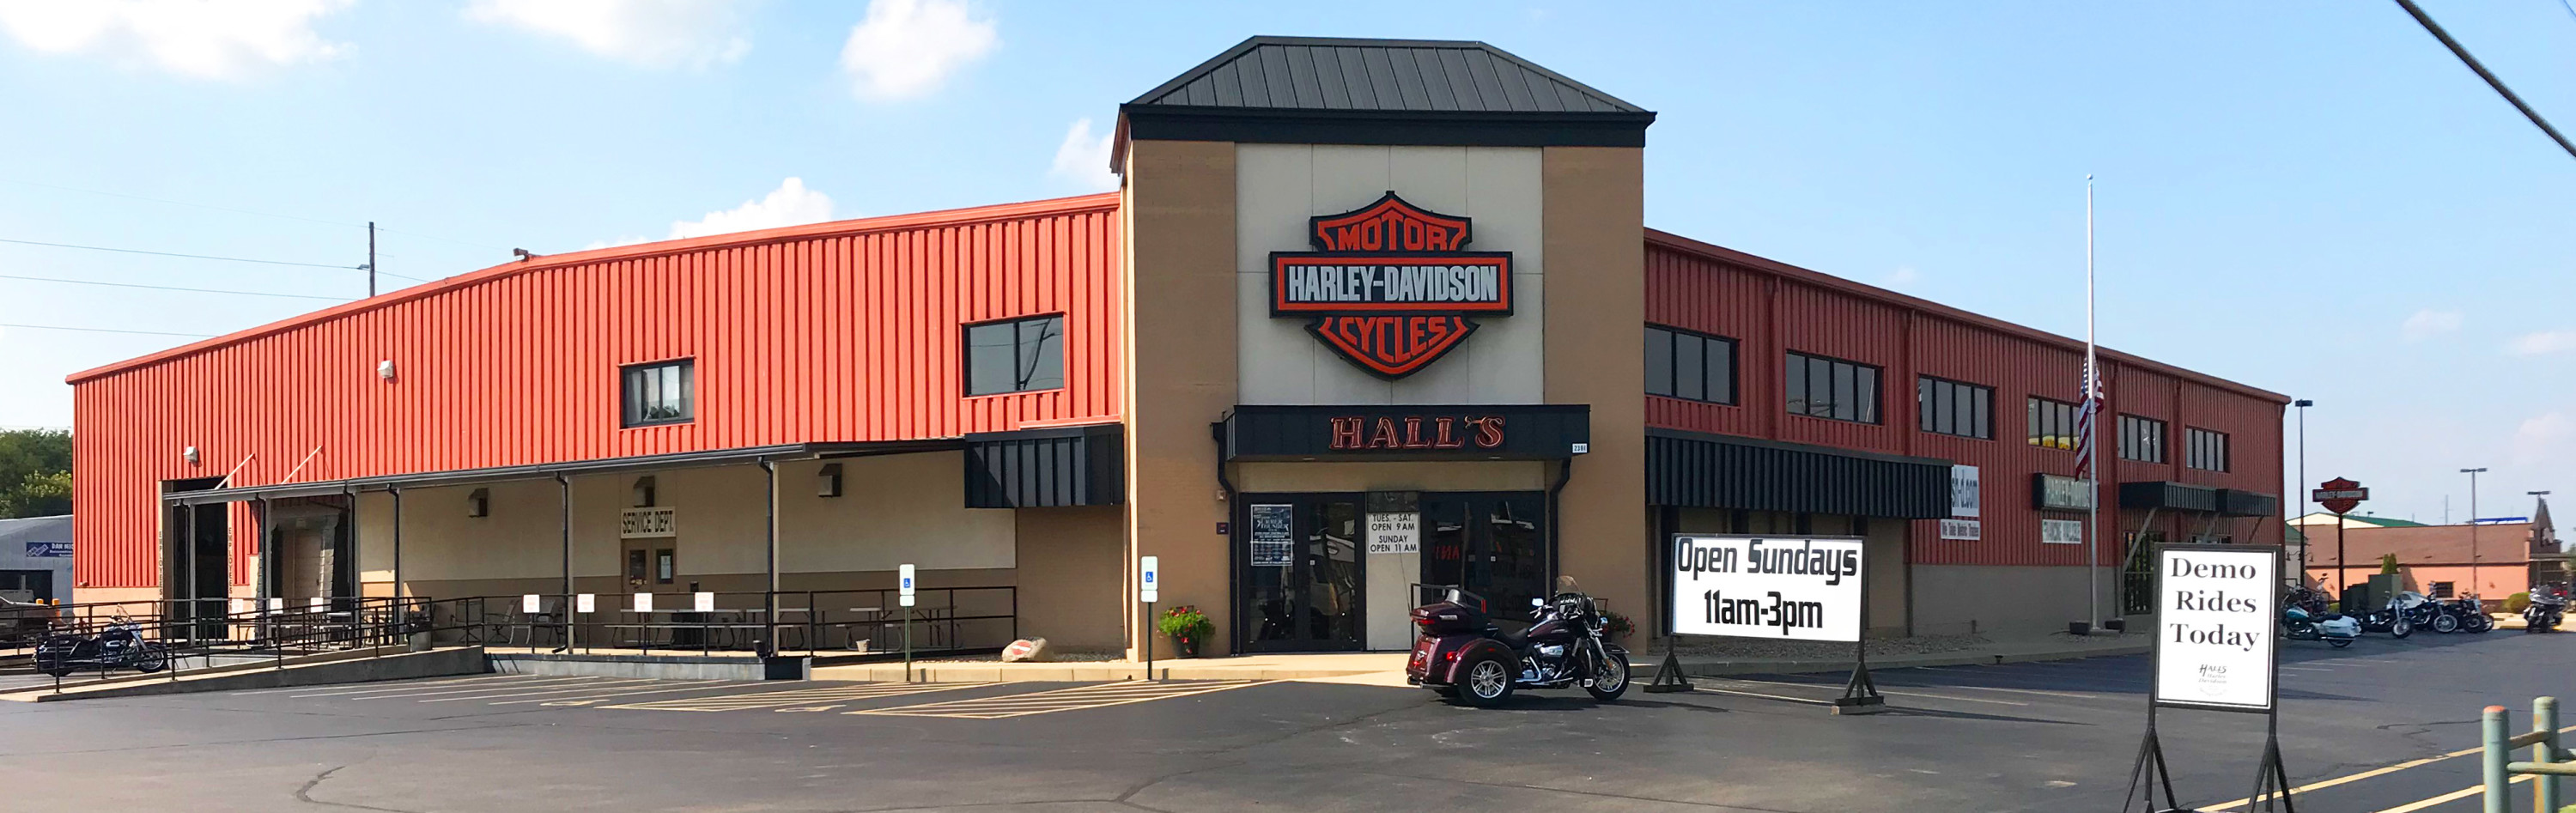 About Hall's H-D®